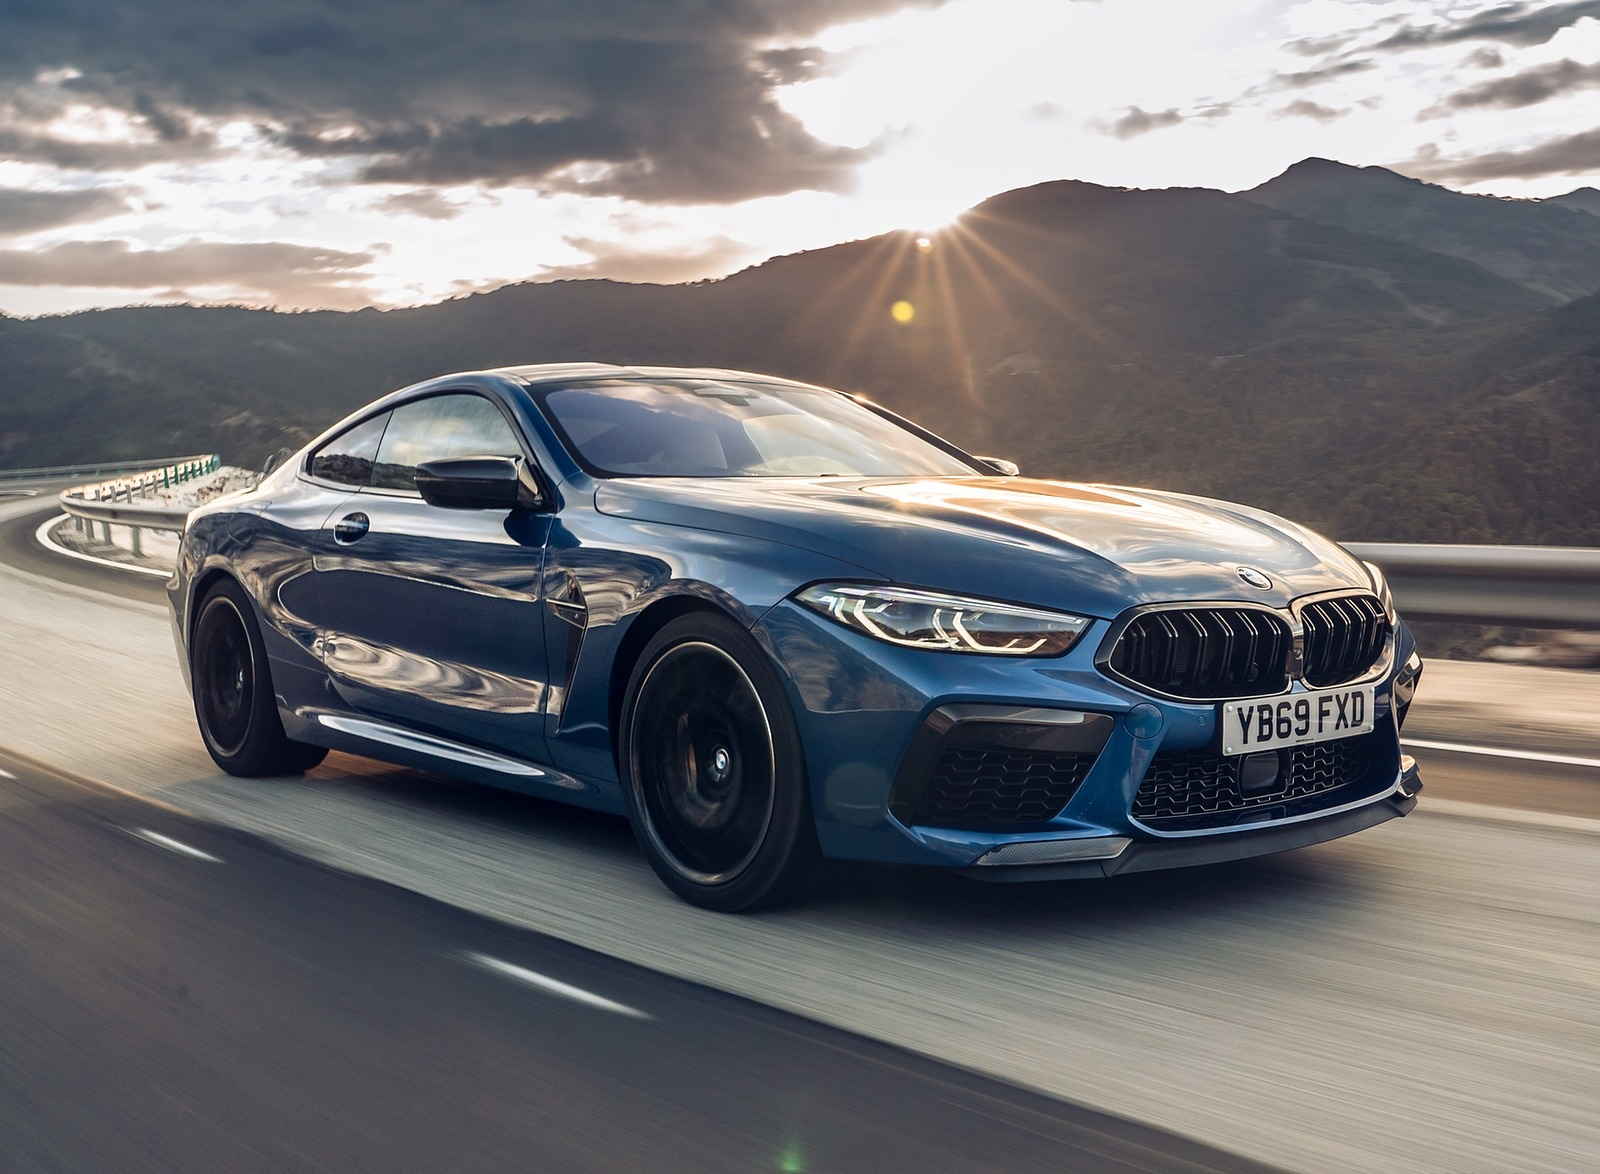 2020 BMW M8 Competition Coupe (UK-Spec) Front Three-Quarter Wallpapers (7)